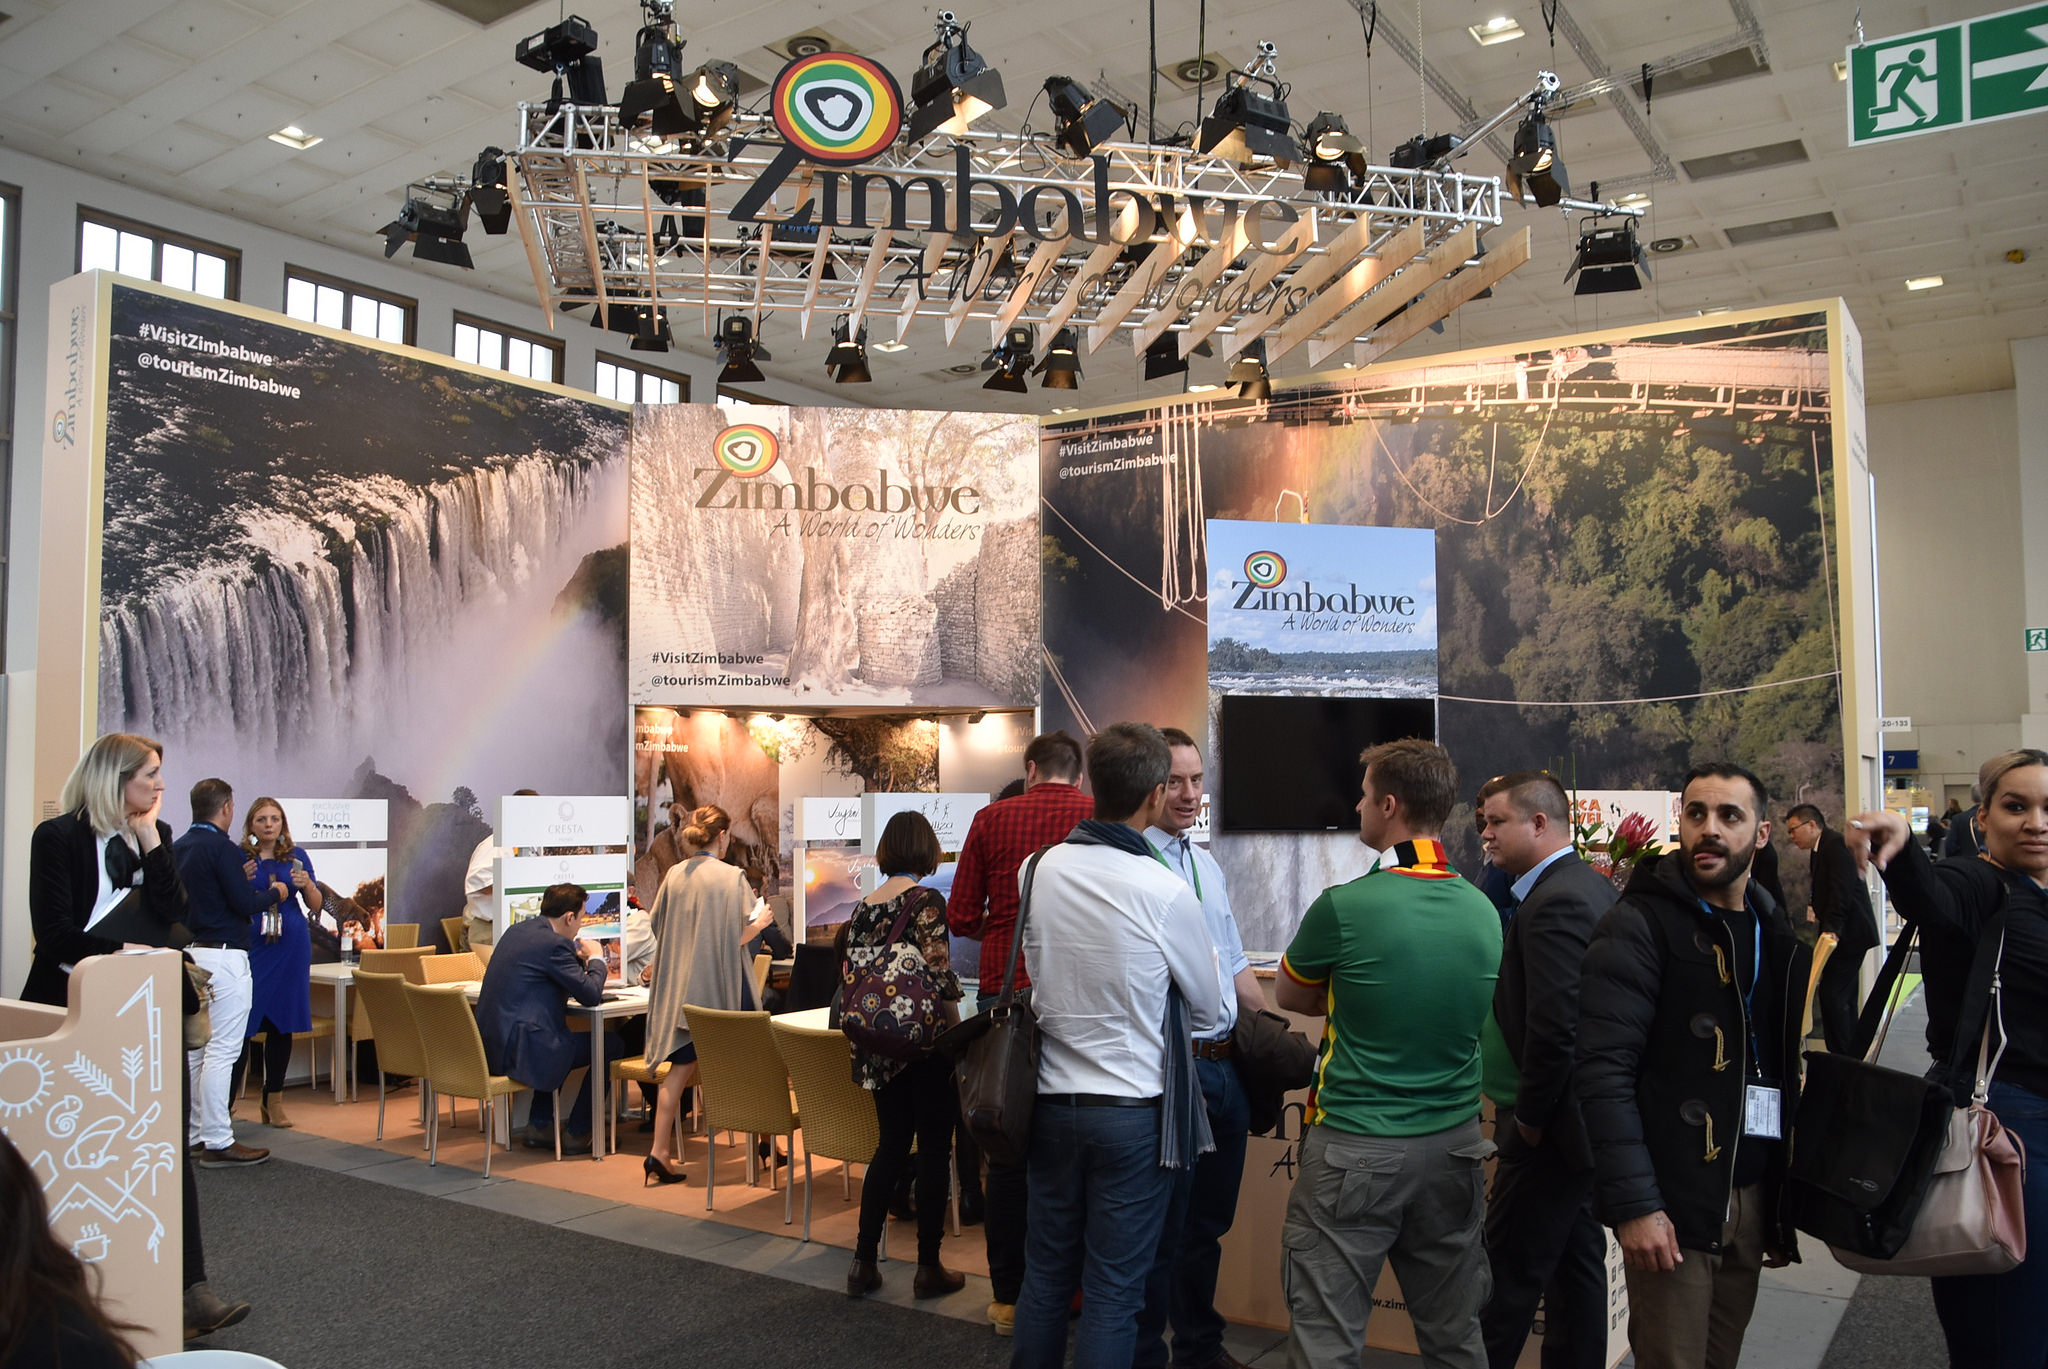 Zimbabwe Tourism takes marketing efforts to Fitur in Spain